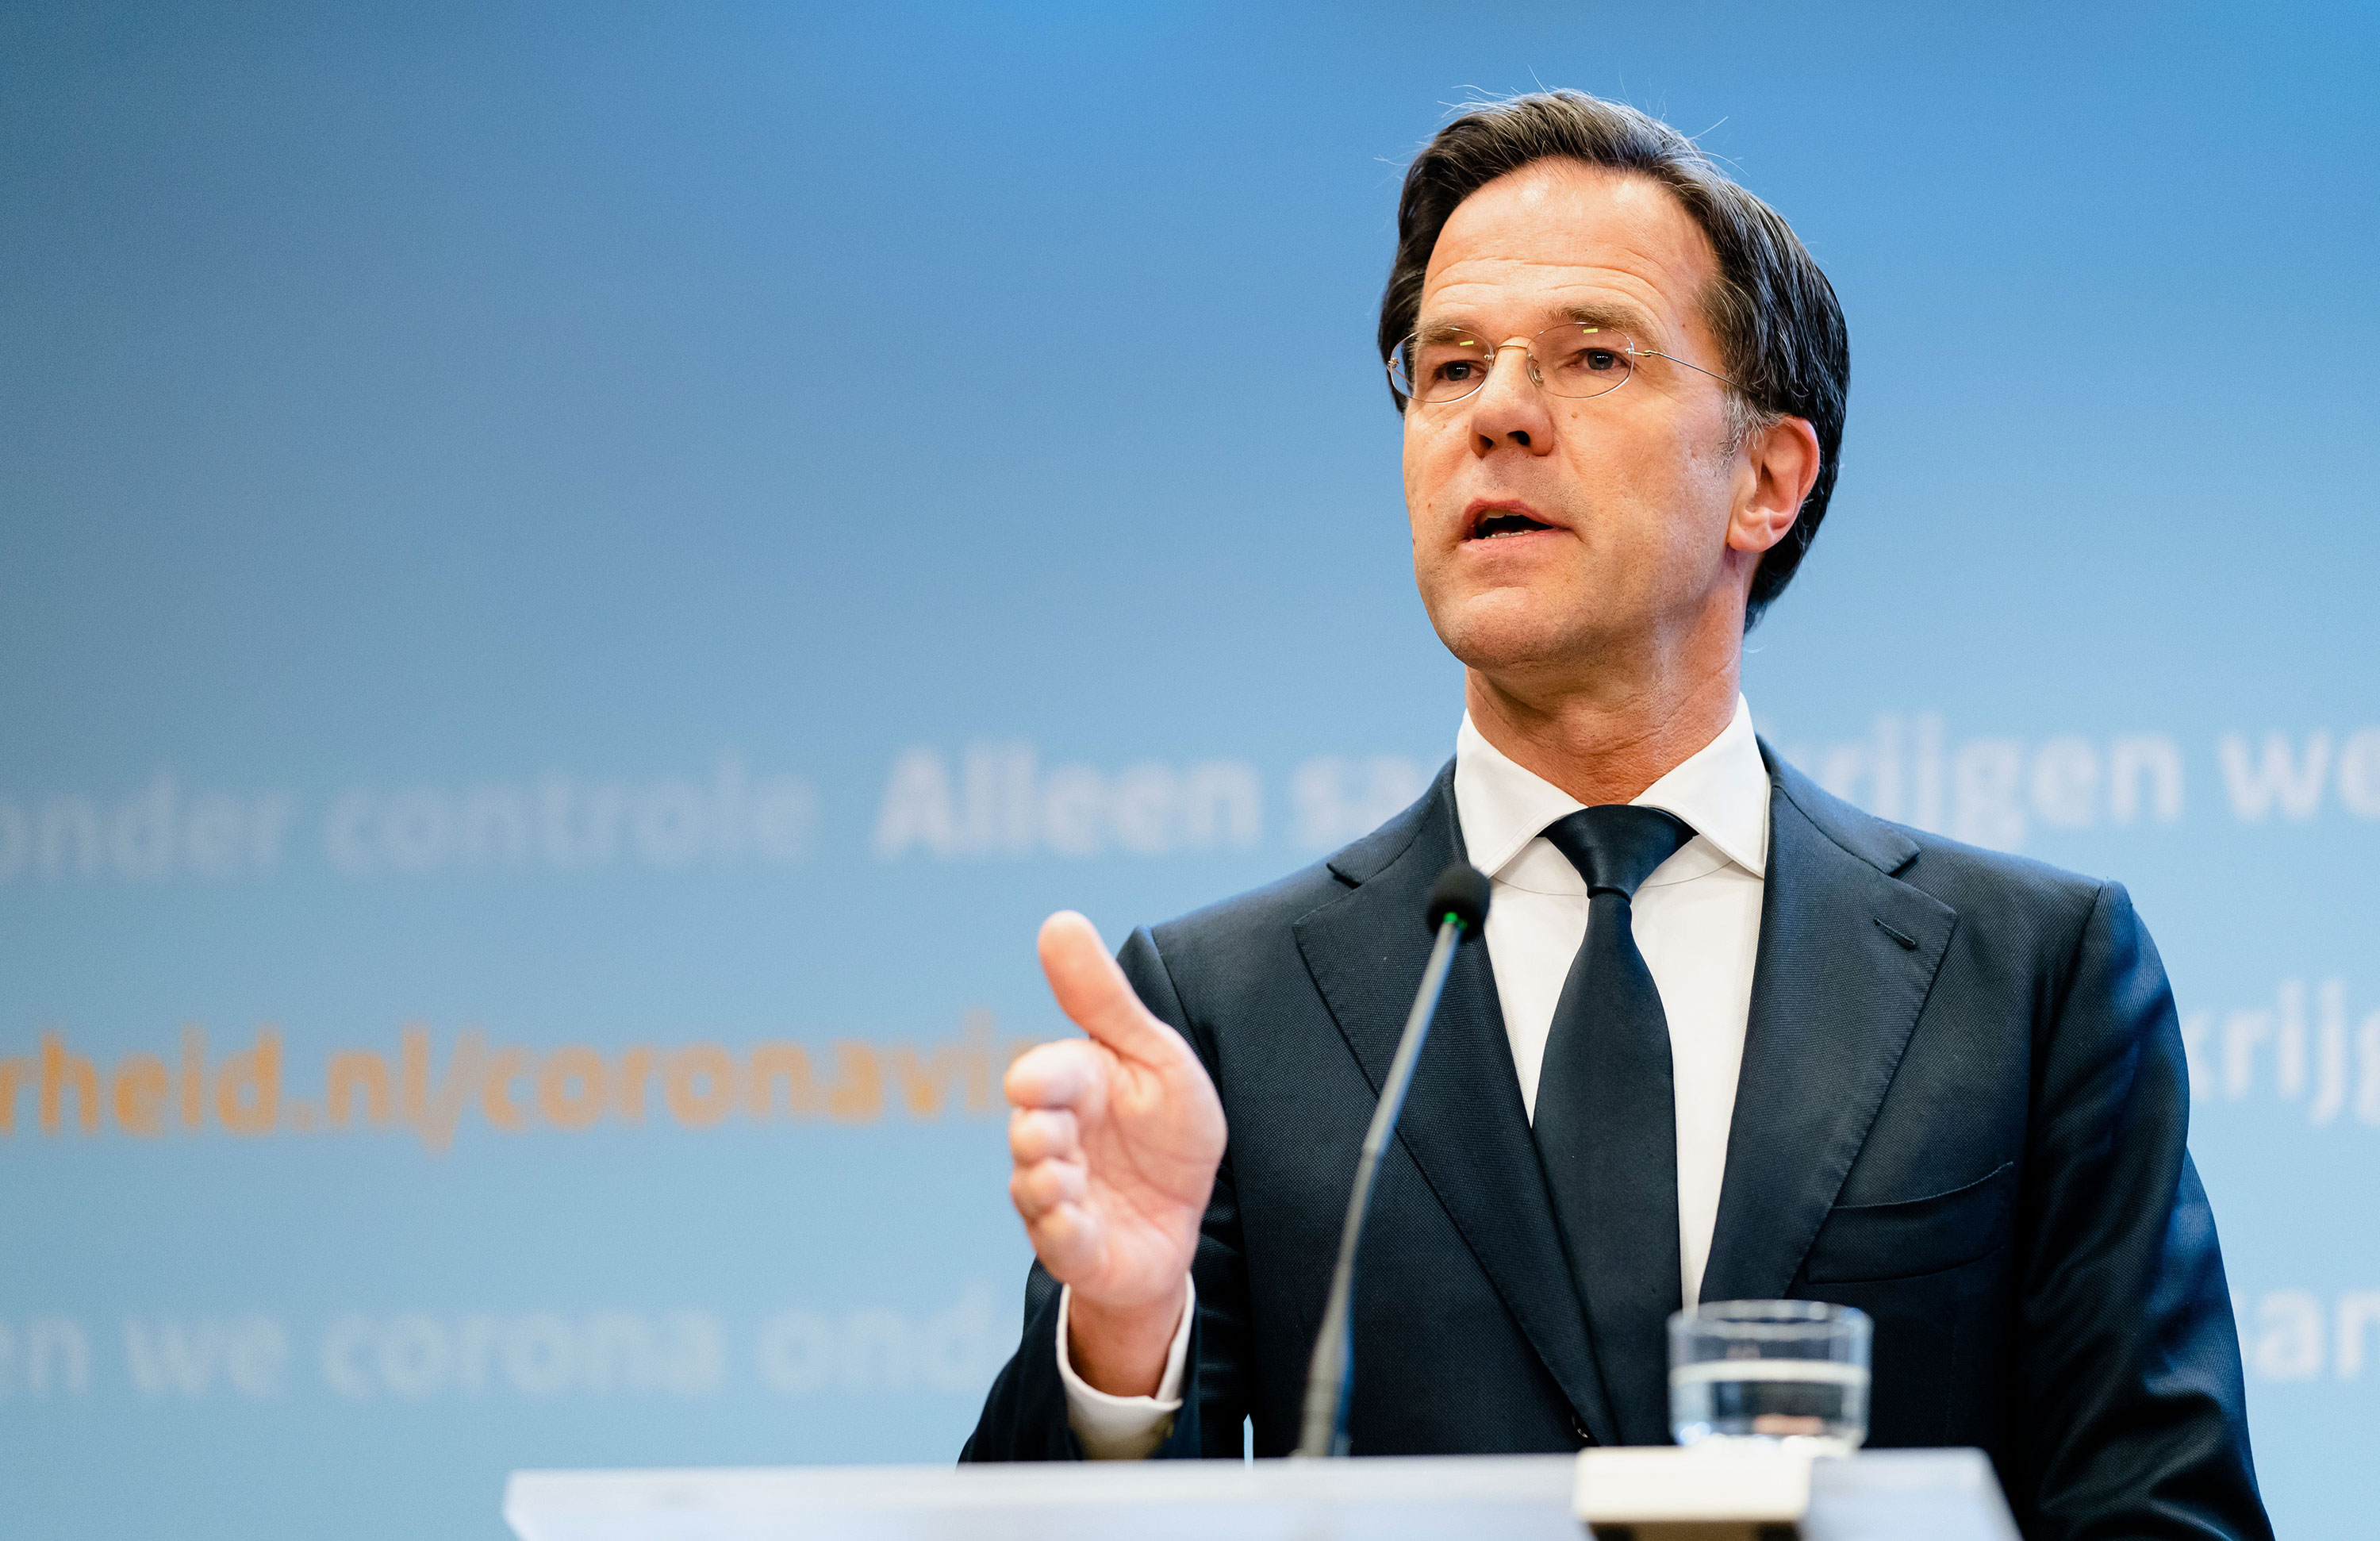 Dutch Prime Minister Mark Rutte speaks during a news conference in The Hague on April 21.